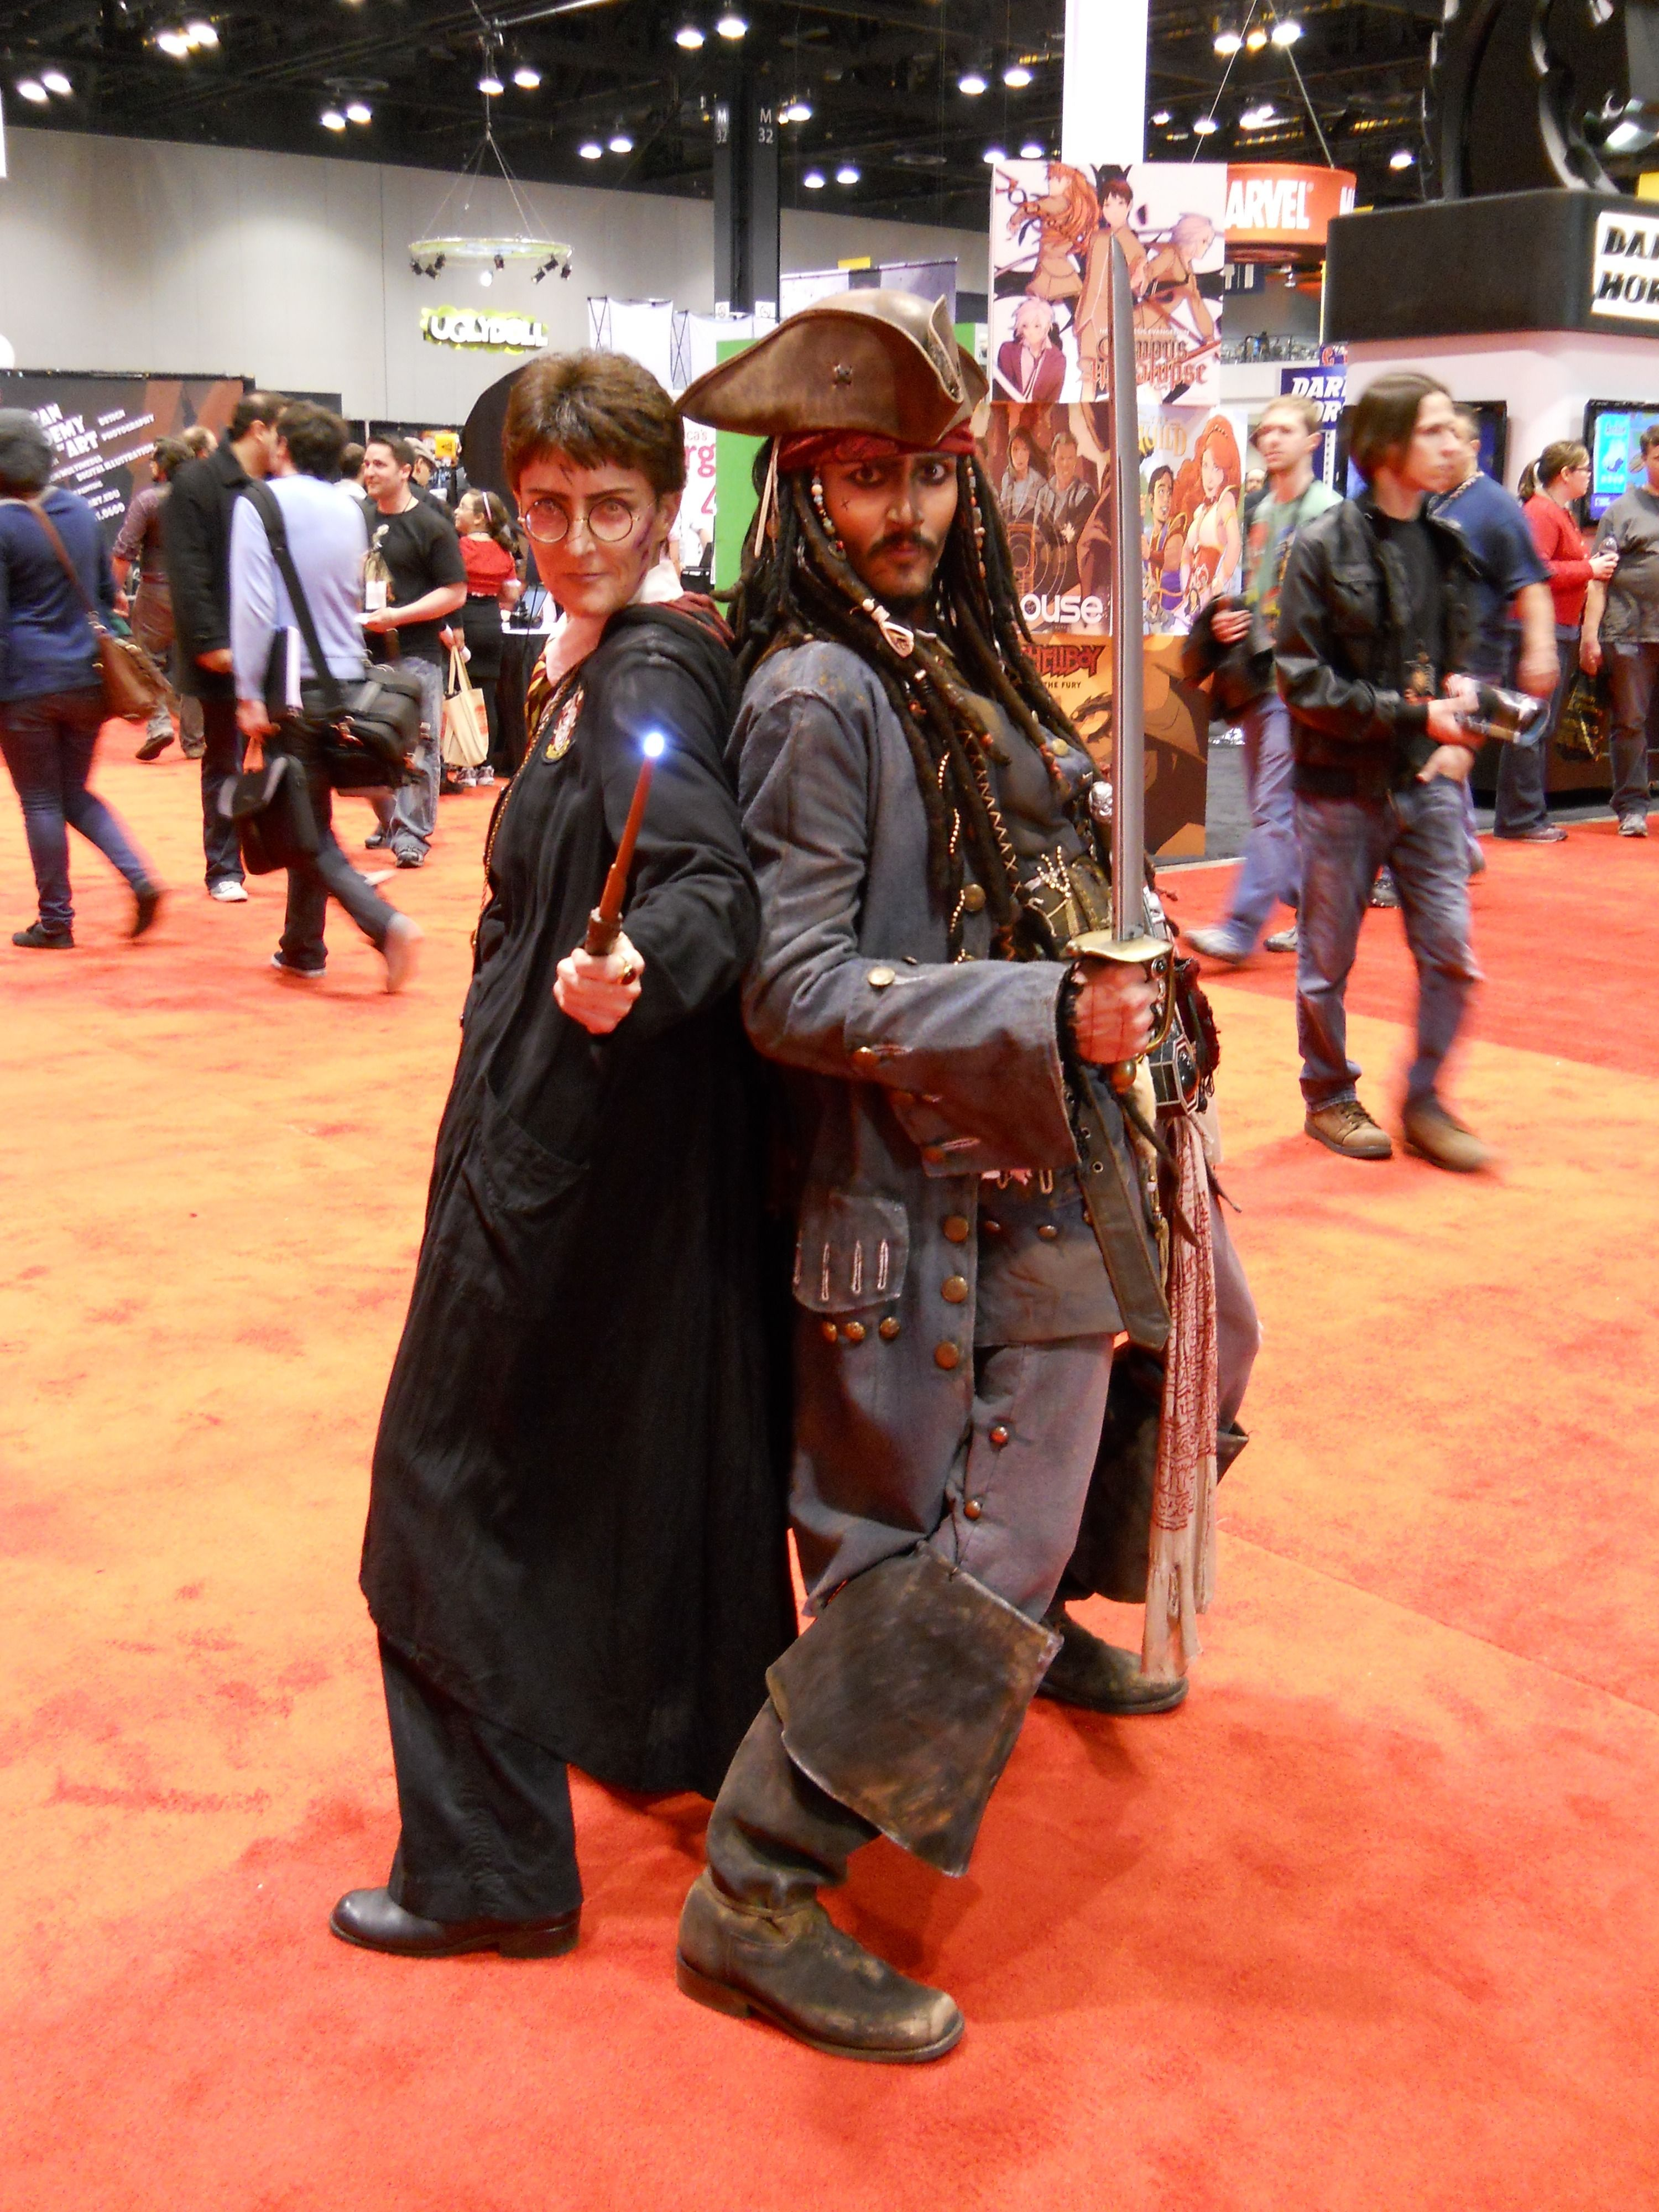 c2e2-harry-potter-jack-sparrow-costume-image  sc 1 st  Collider & Collider Goes to C2E2; Over 30 Toy and Costume Pictures | Collider